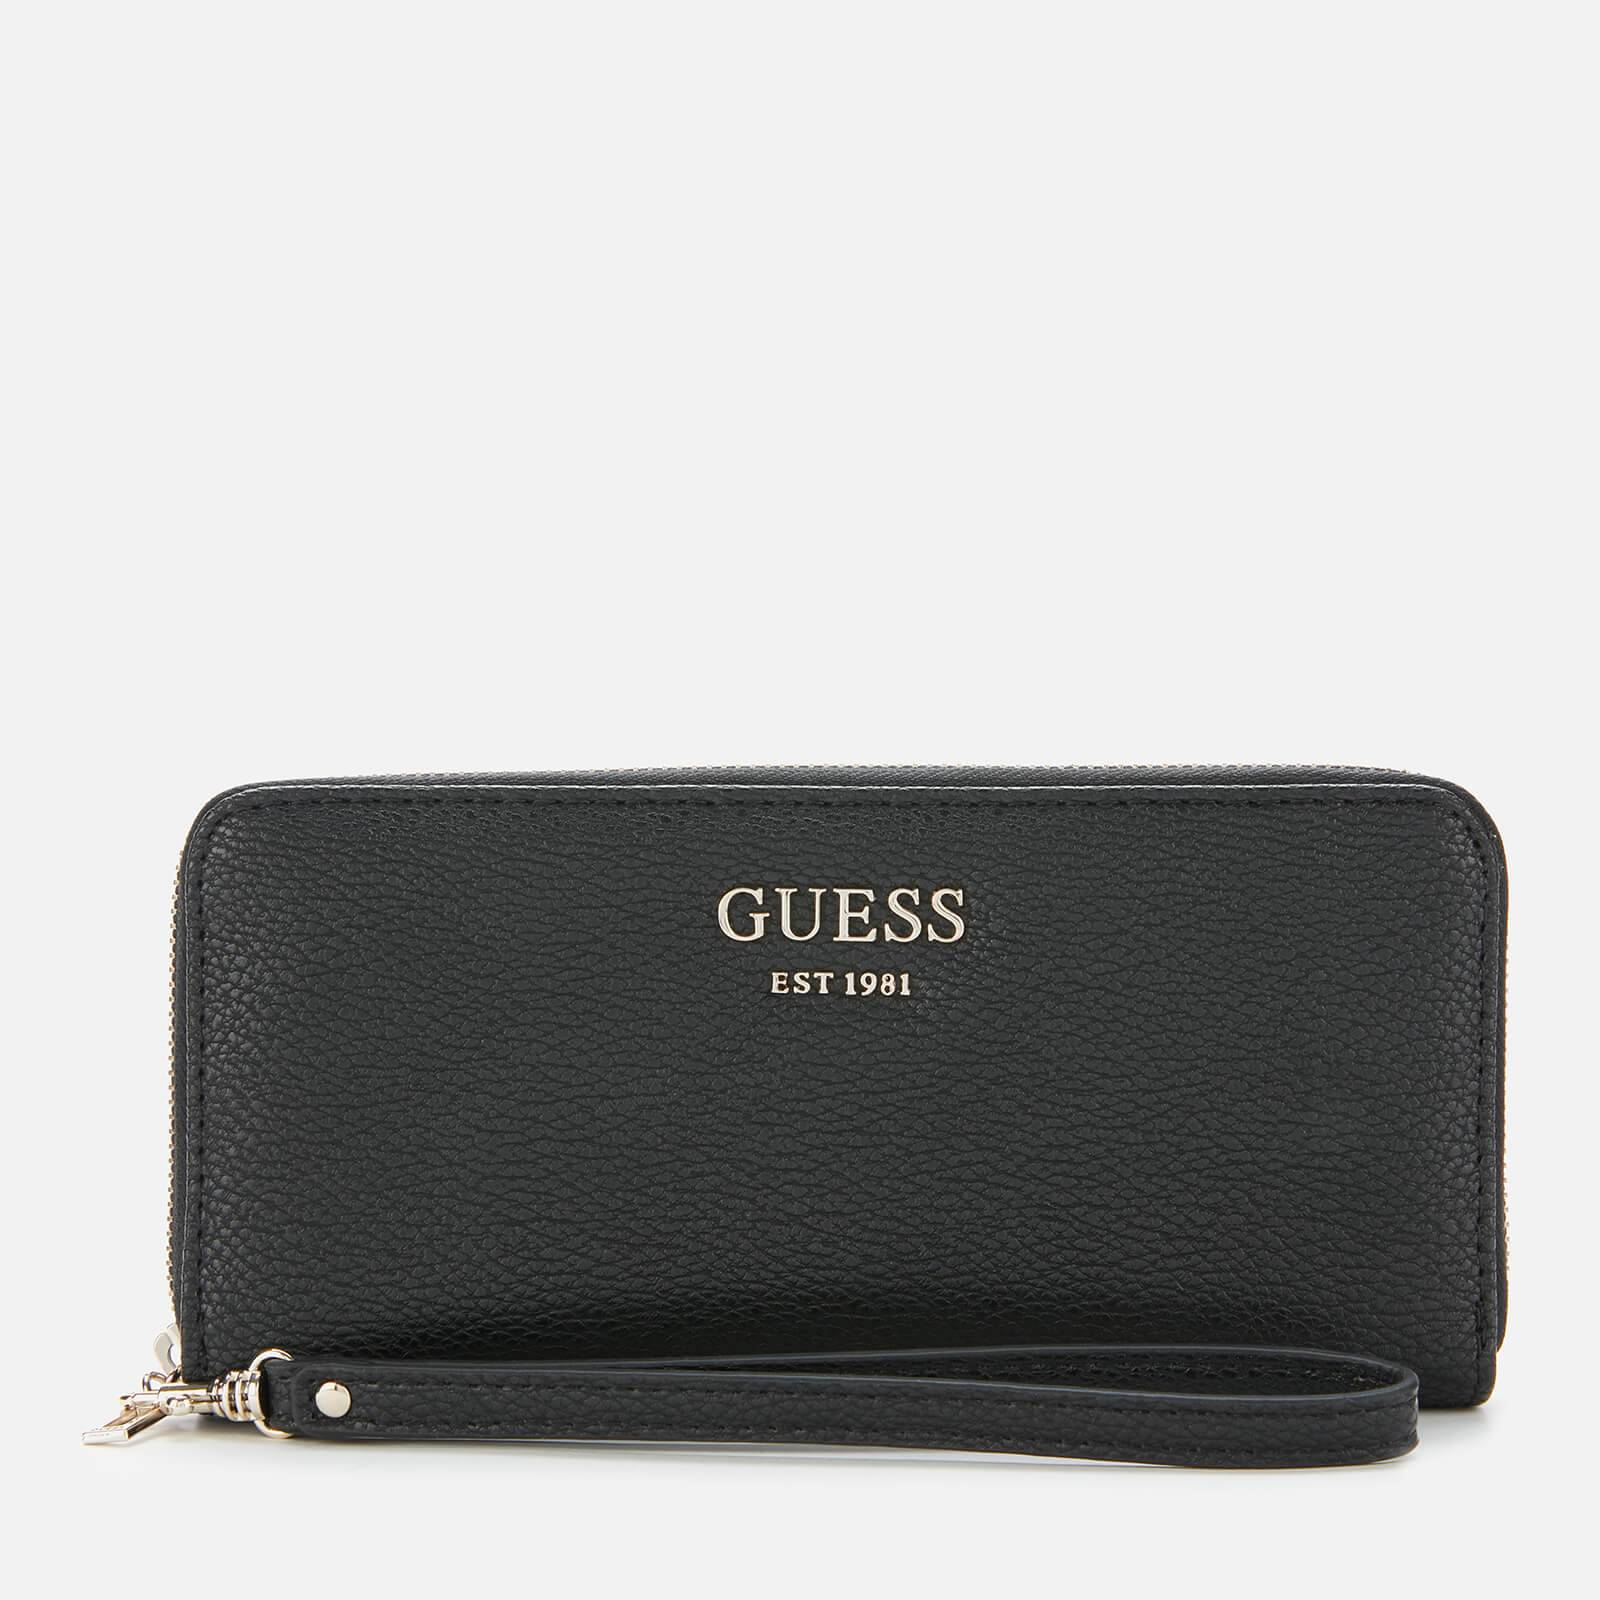 Guess Women's Vikky Large Zip Around Purse - Black